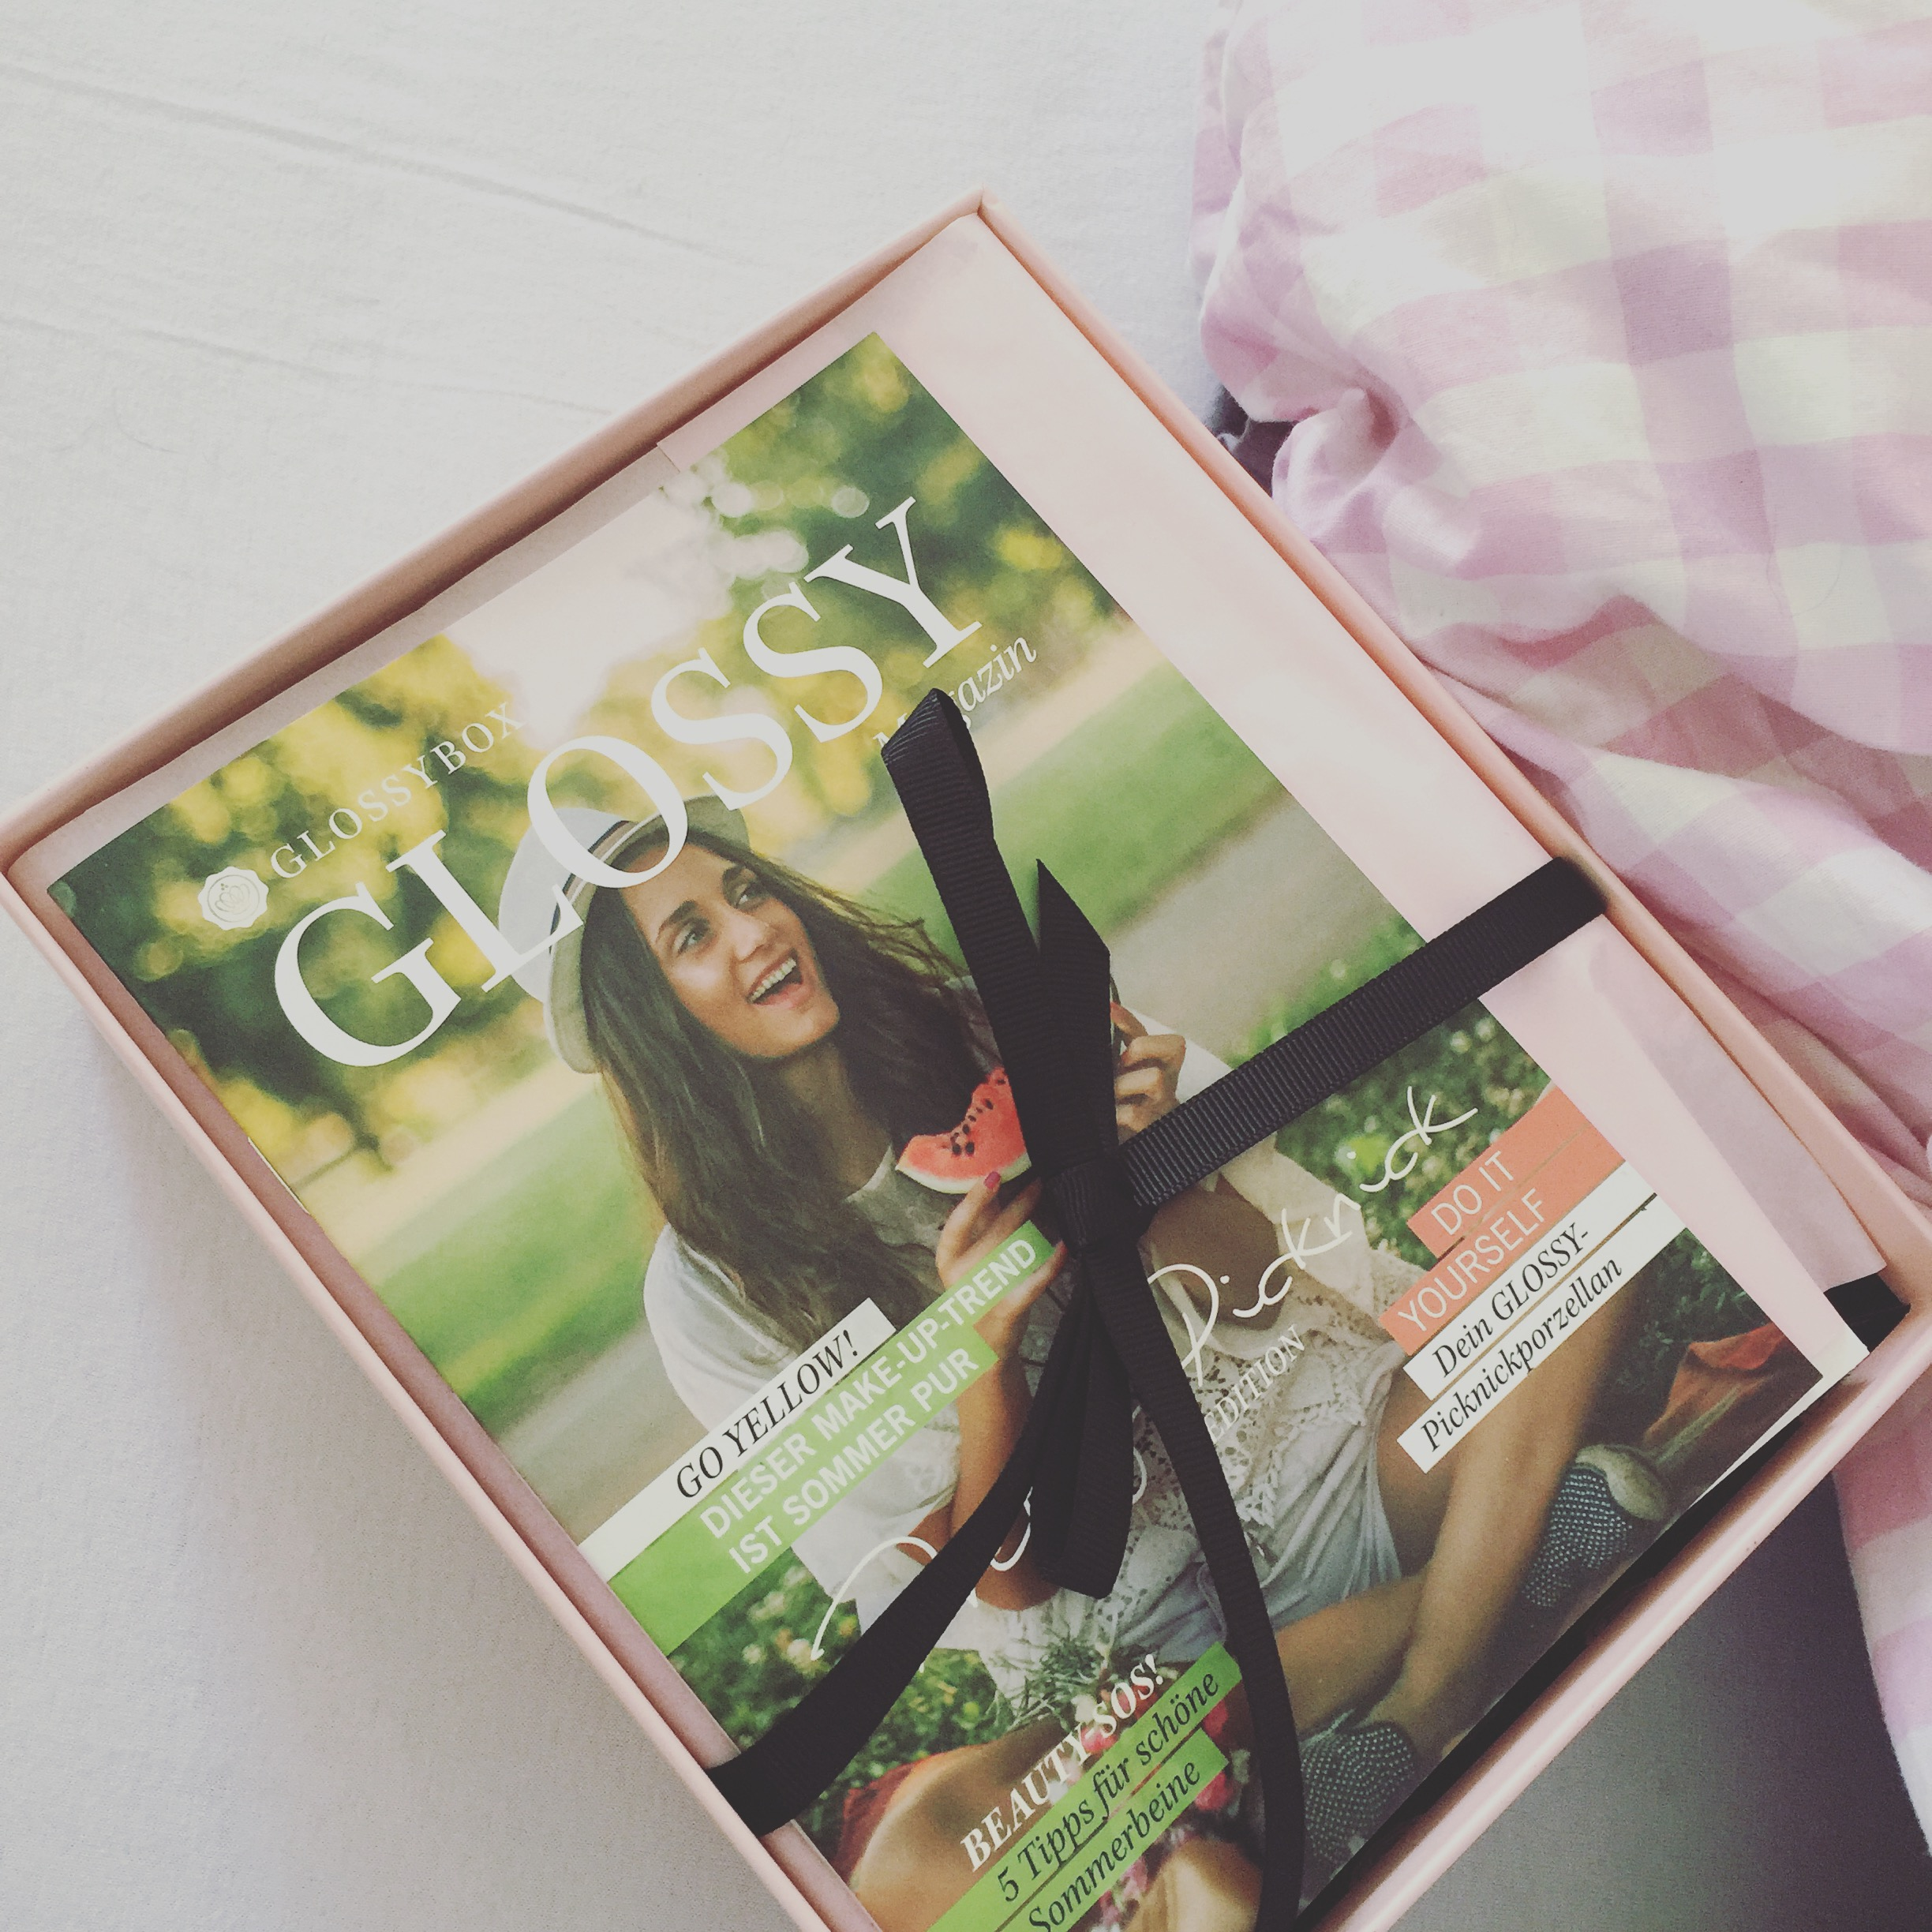 Glossybox and Co